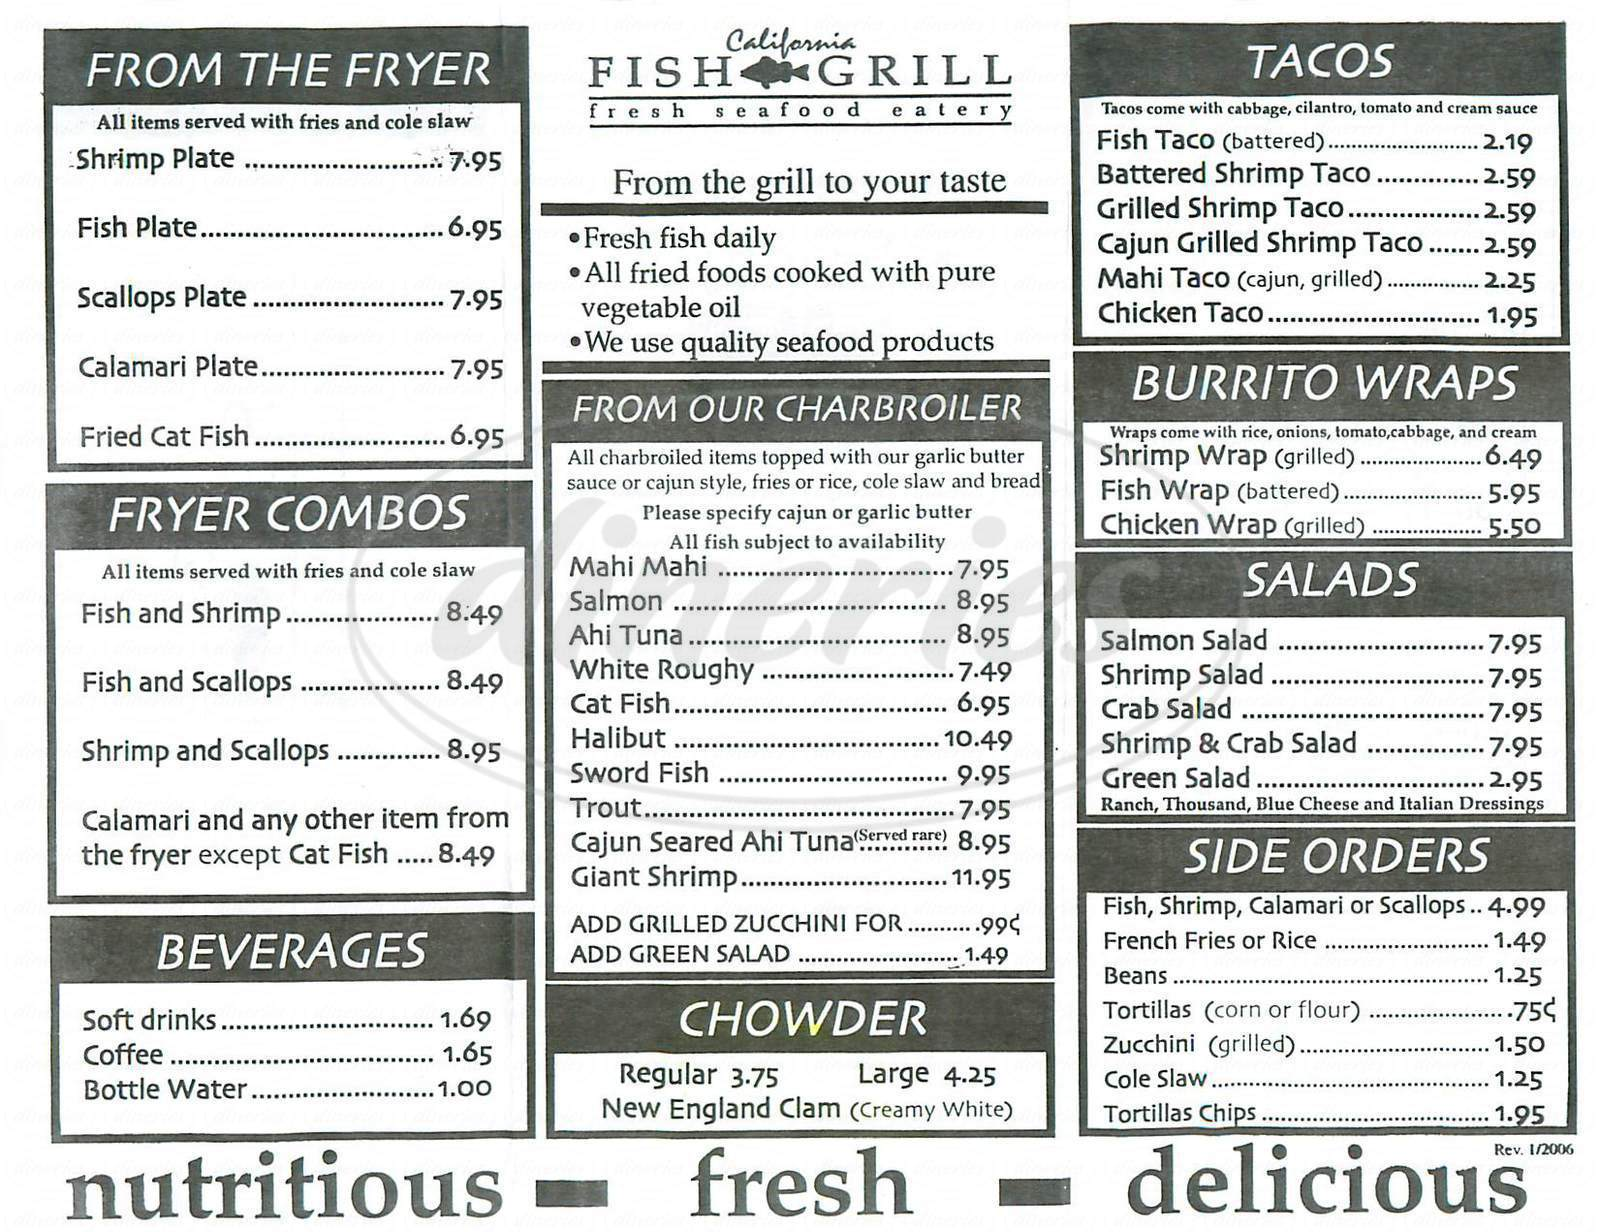 menu for California Fish Grill